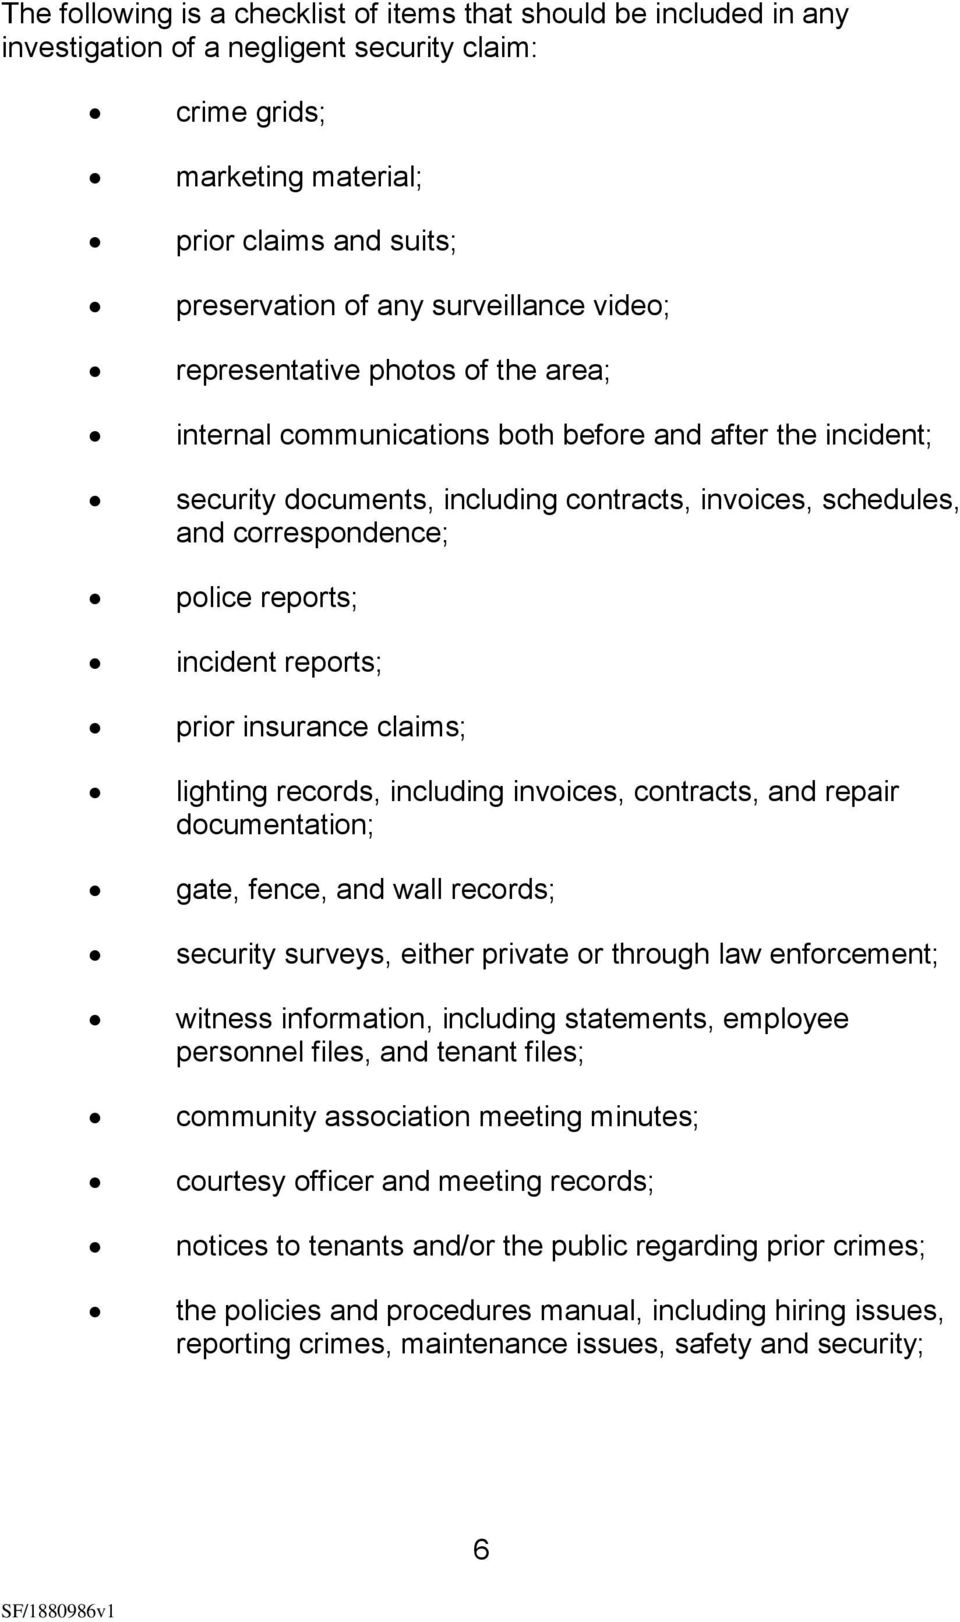 police reports; incident reports; prior insurance claims; lighting records, including invoices, contracts, and repair documentation; gate, fence, and wall records; security surveys, either private or